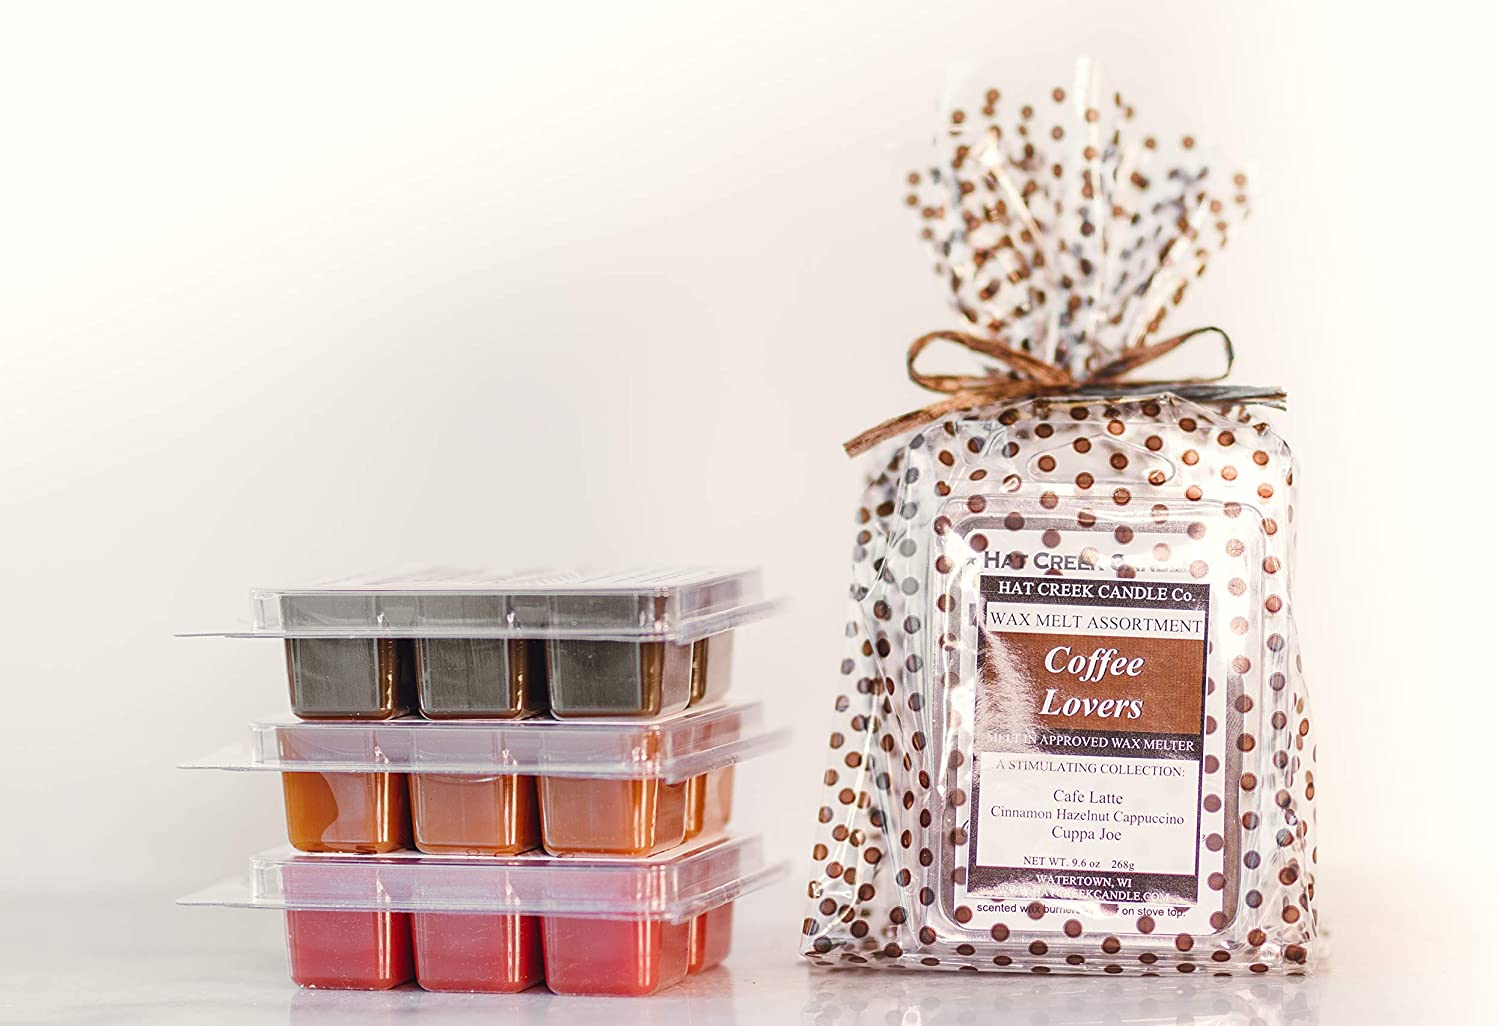 Coffee Lover's Melty Cube Scented Wax Melts: Cuppa Joe, Cinnamon Hazelnut Cappuccino, Cafe Latte